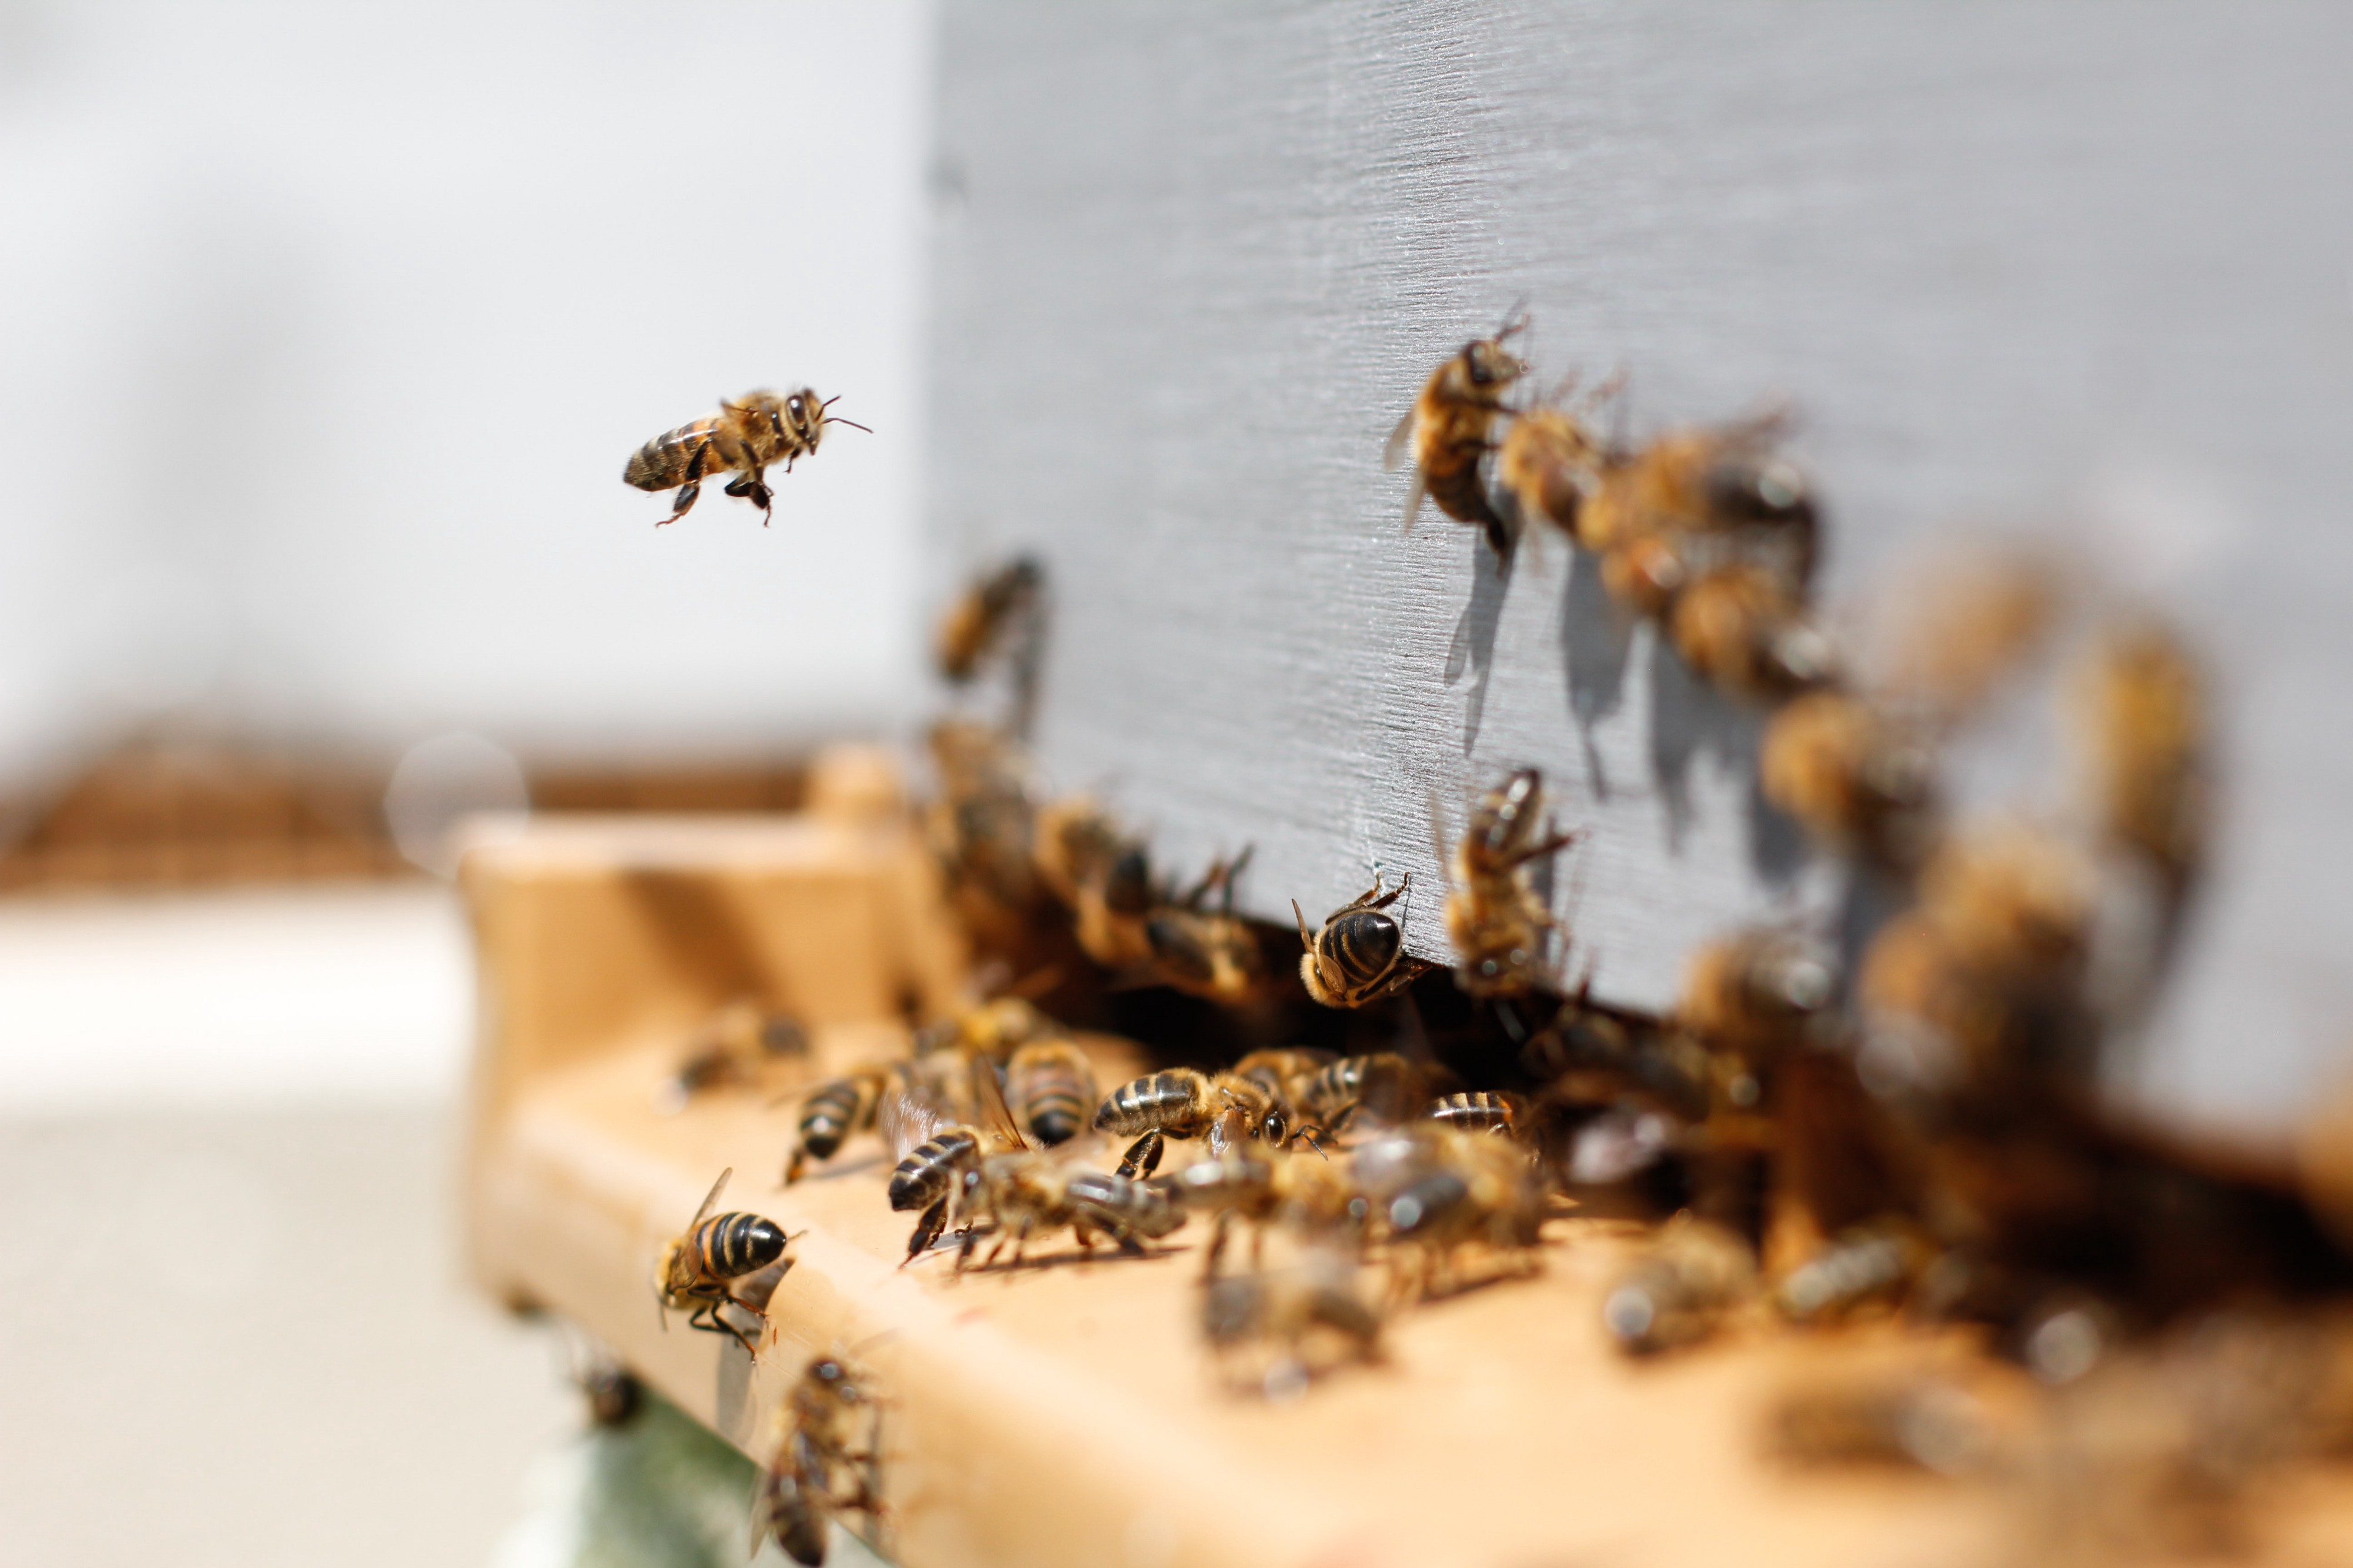 Bees flying into a hive